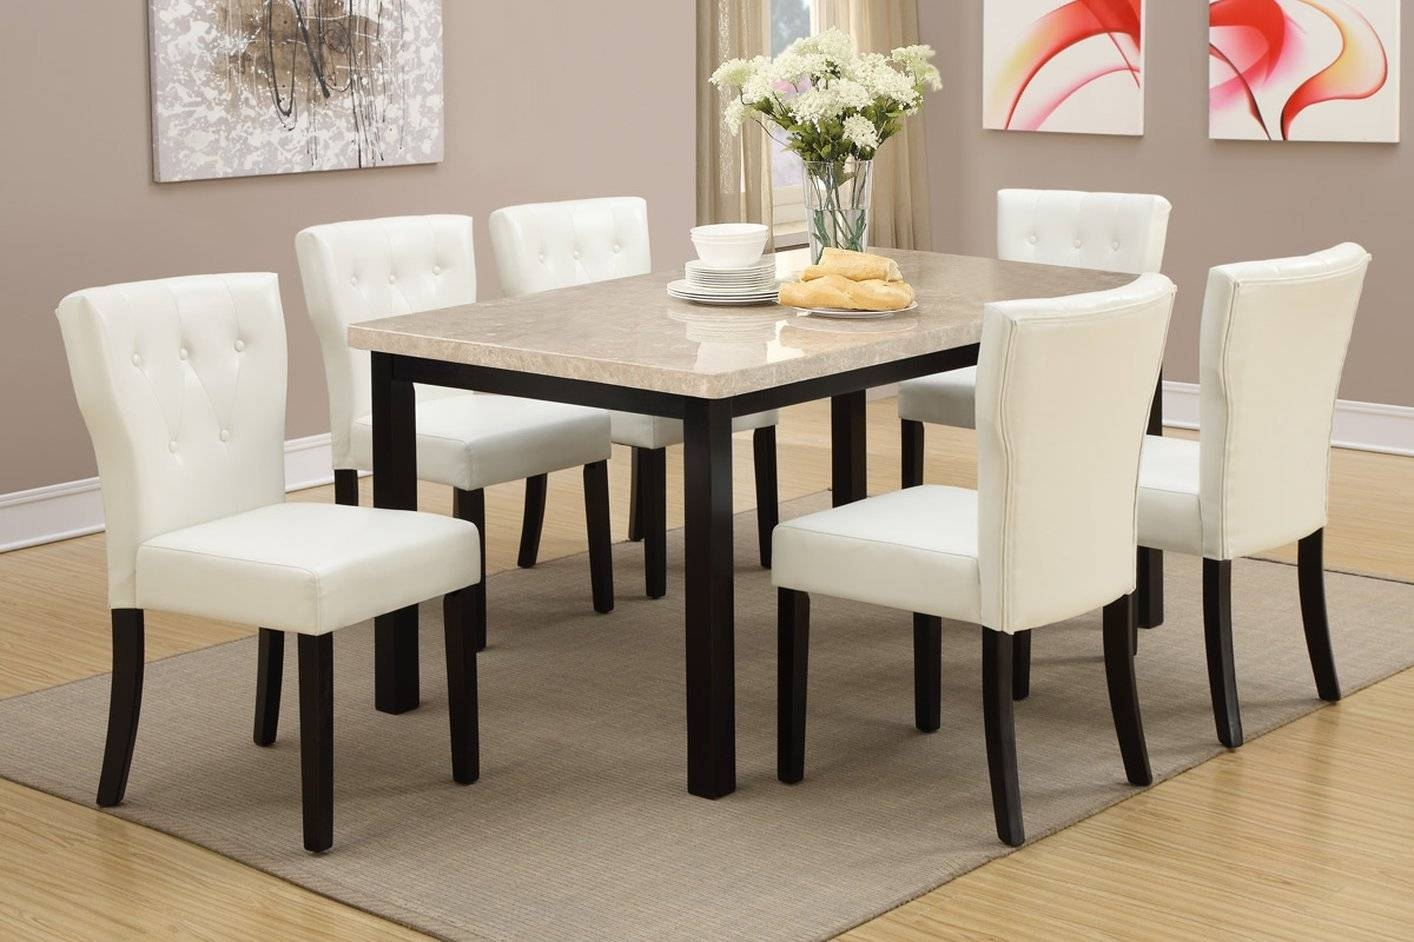 Brown Marble Dining Table - Steal-A-Sofa Furniture Outlet Los intended for Dining Table With Sofa Chairs (Image 5 of 15)